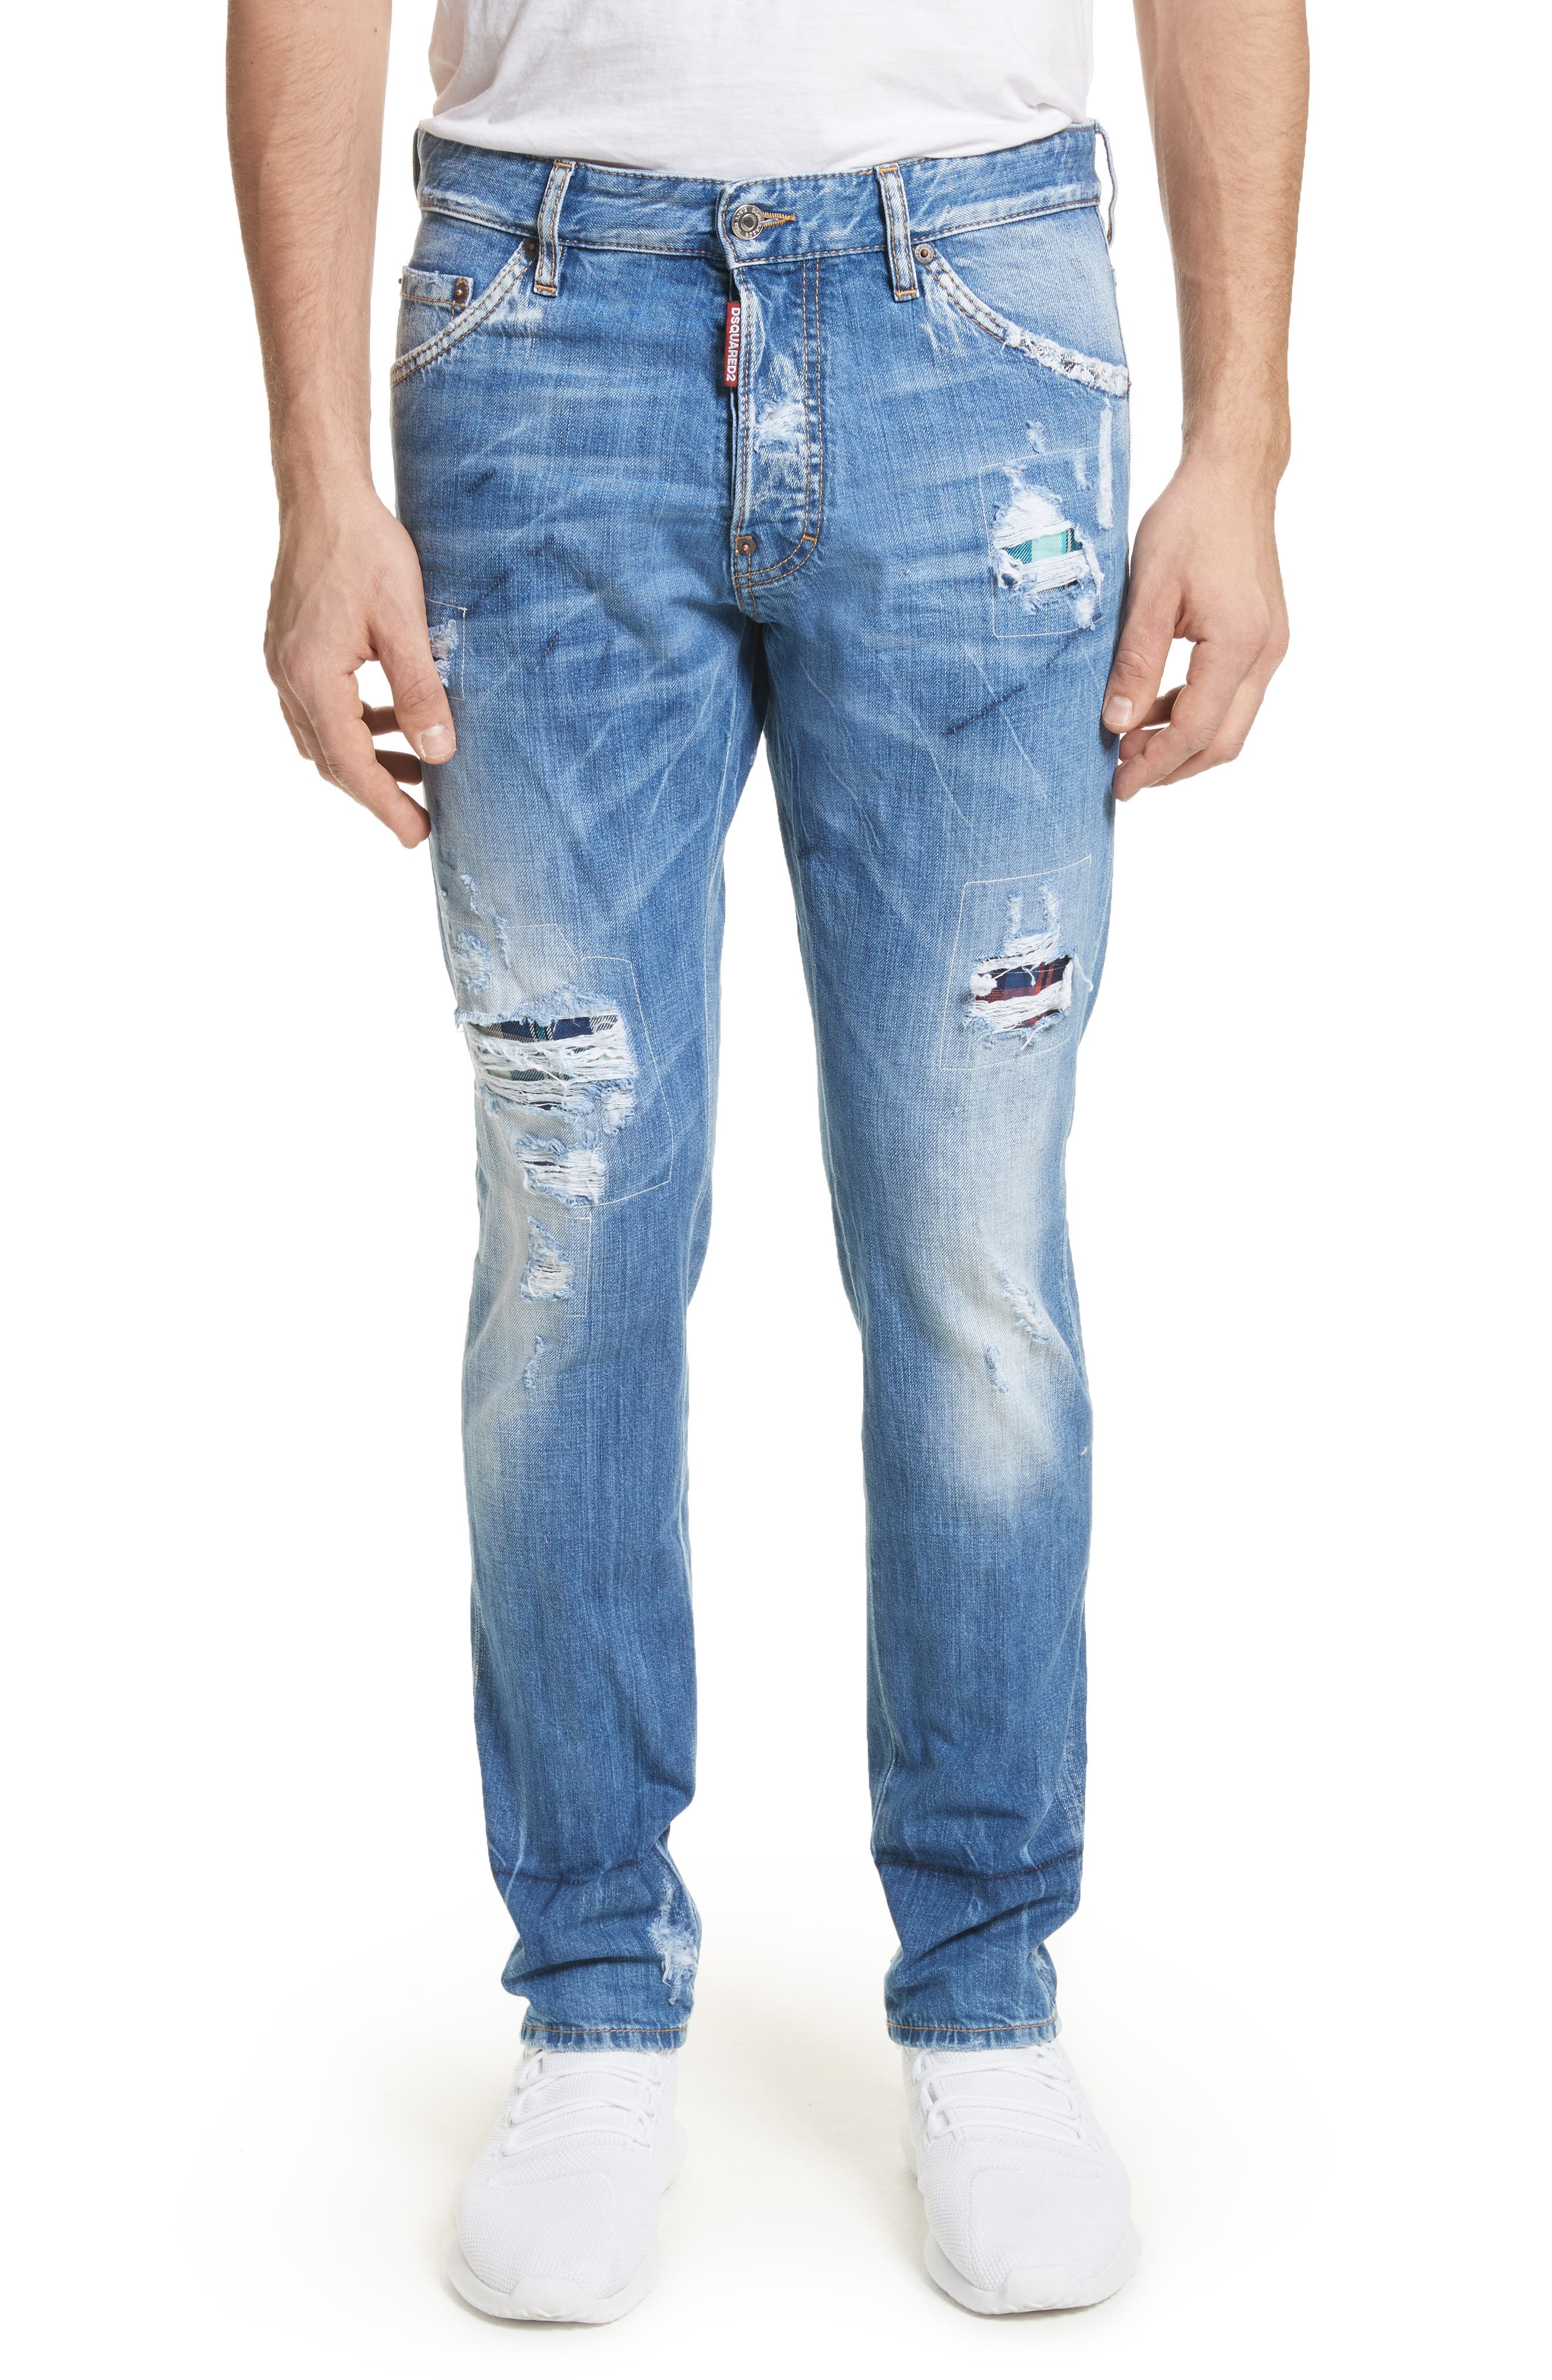 Cool Guy Skinny Fit Jeans,                         Main,                         color, Navy/Blue